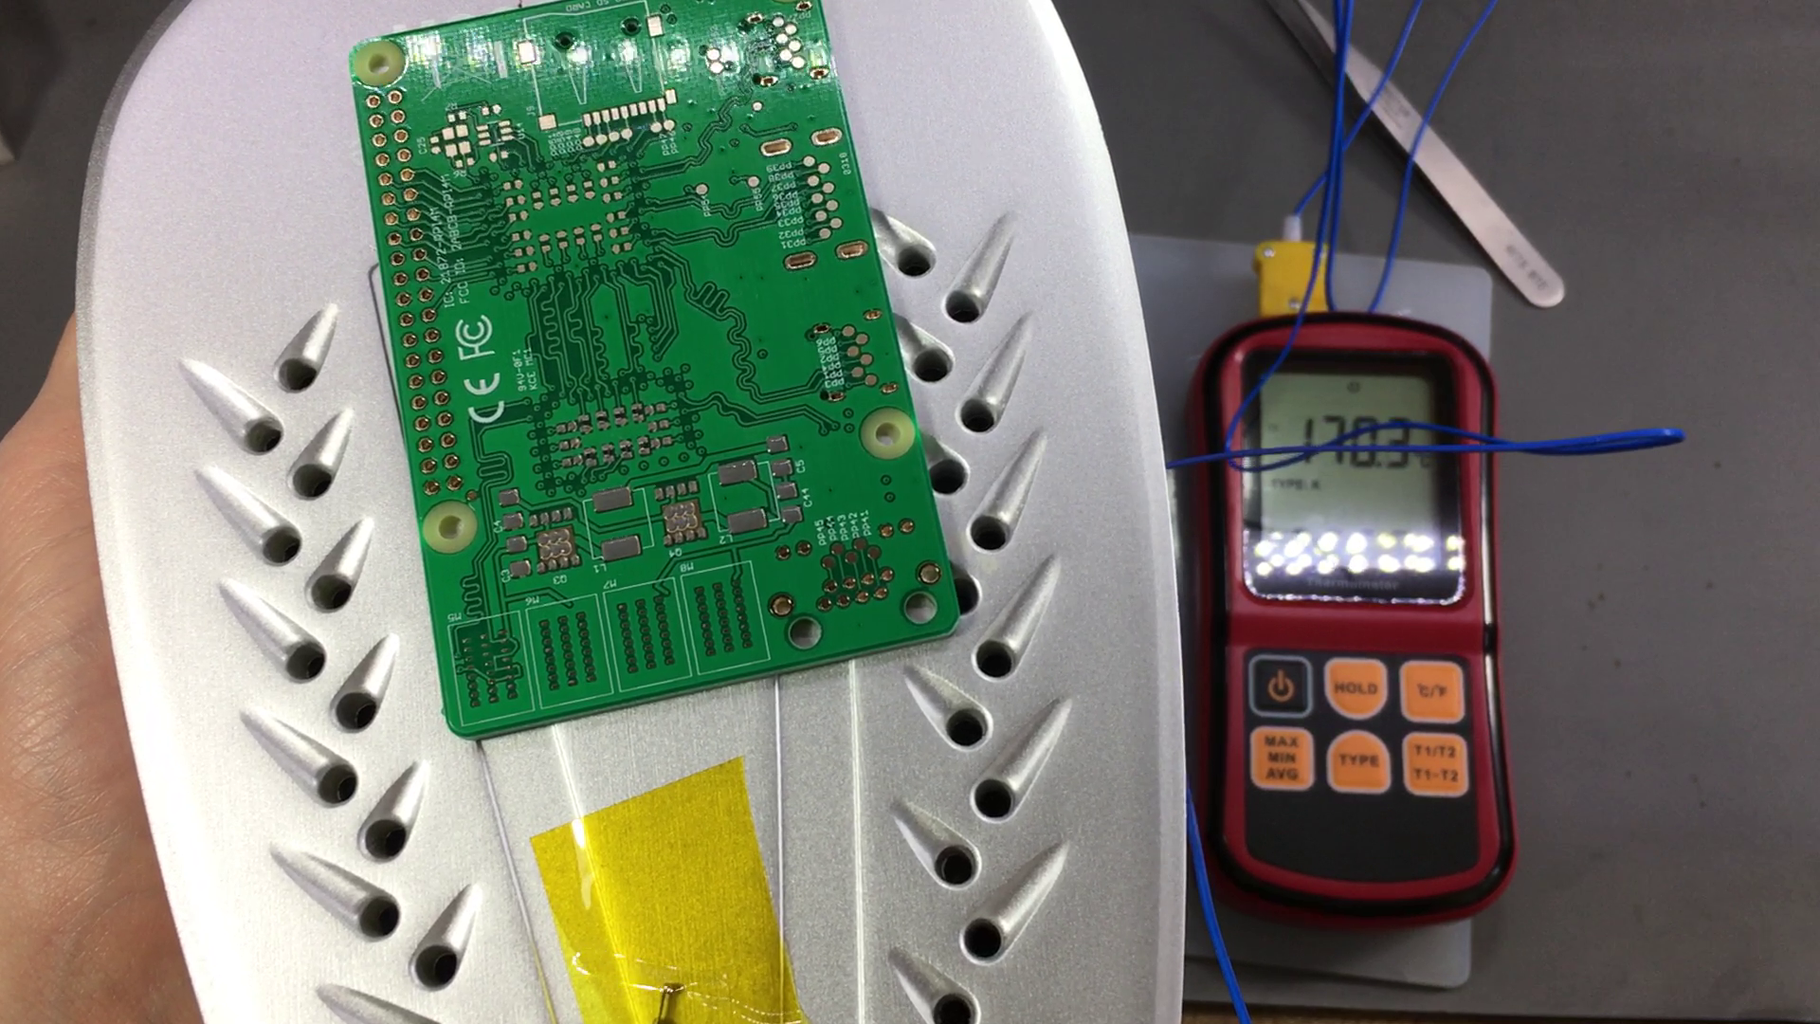 Method #2: Using a Stencil to Apply Solder Paste and Heating With Hot Air